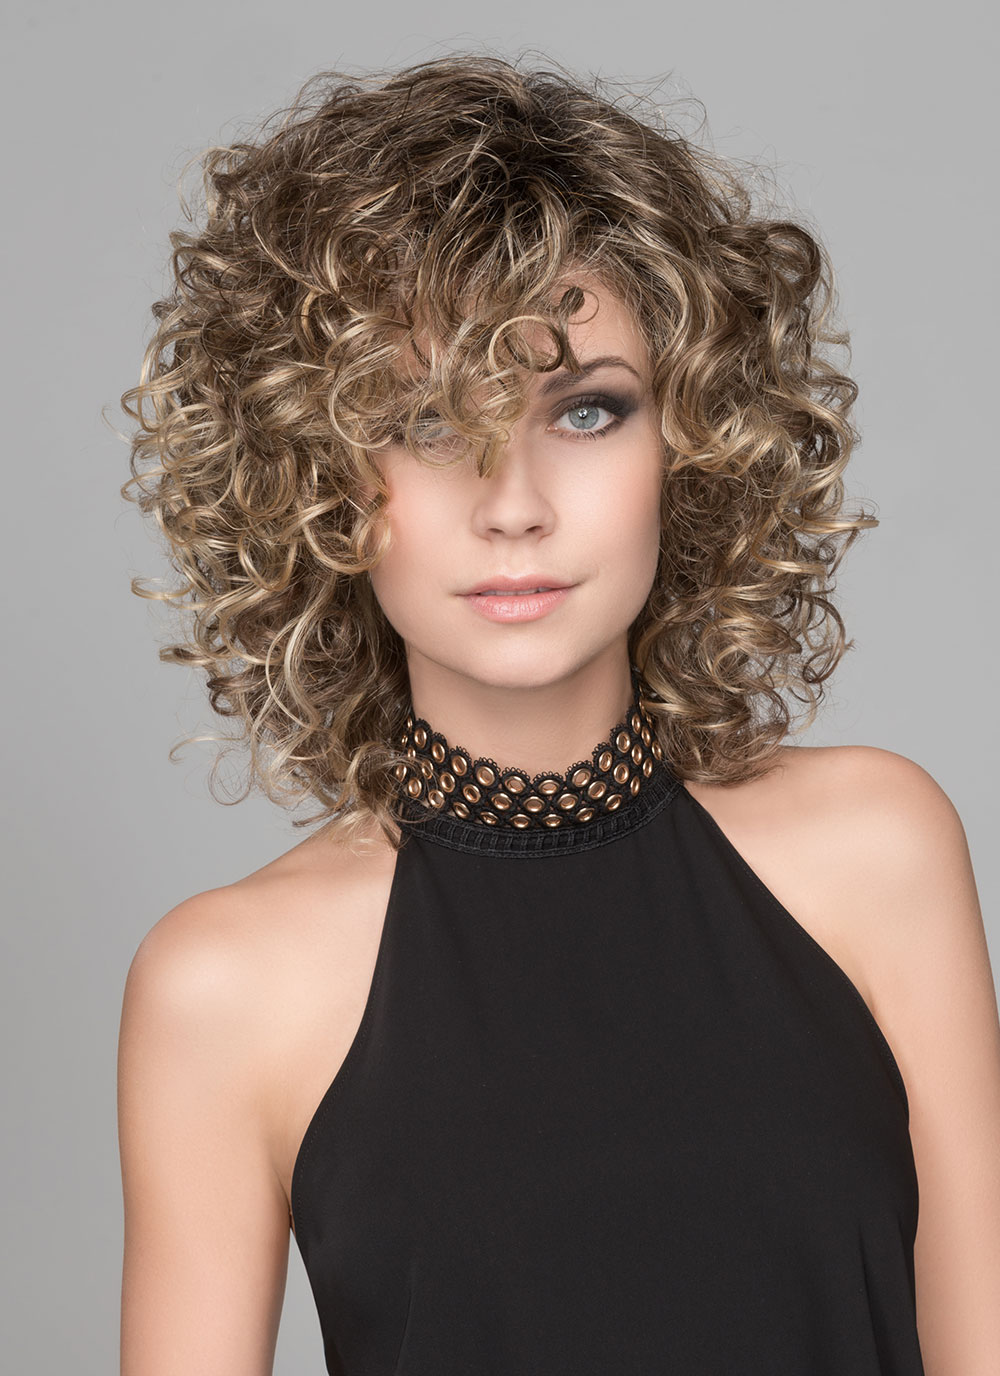 Jamila Plus by Ellen Wille Wigs is a full bodied, beautifully curled wig